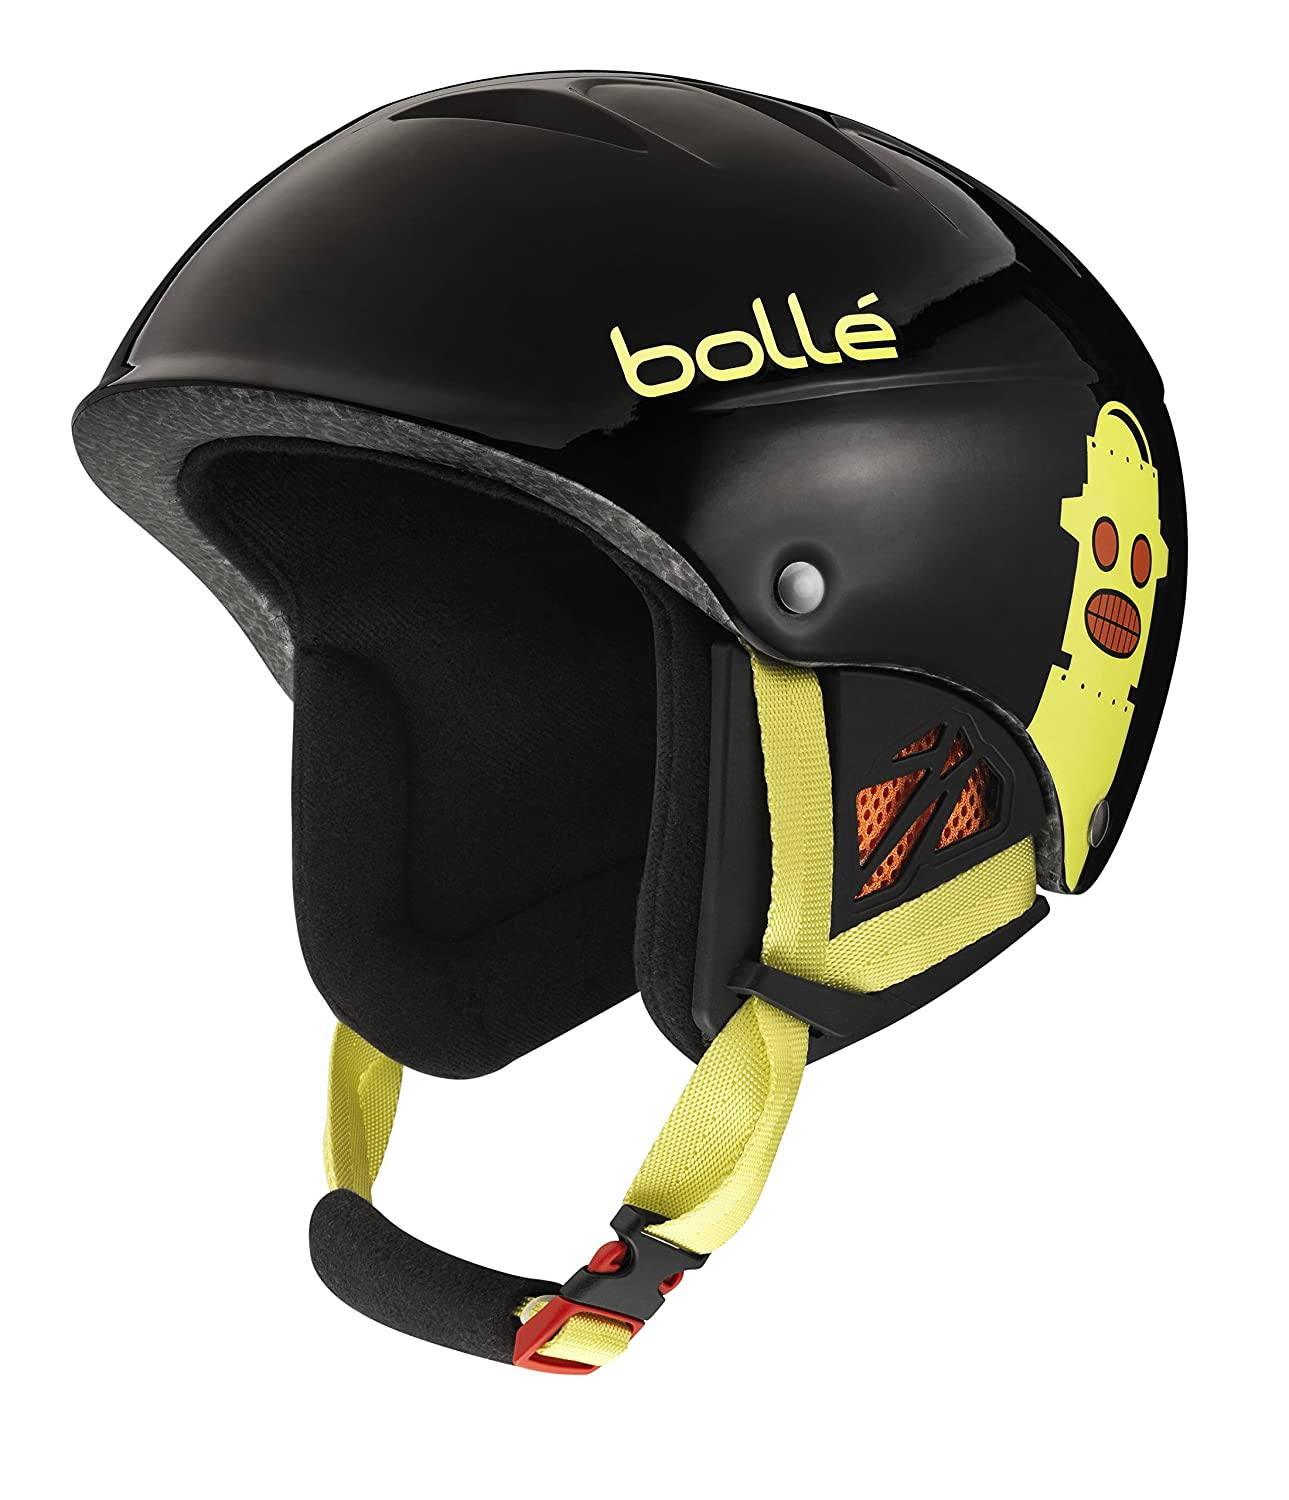 Bollé Helmet B Kid Shiny Birds Casco de esquí